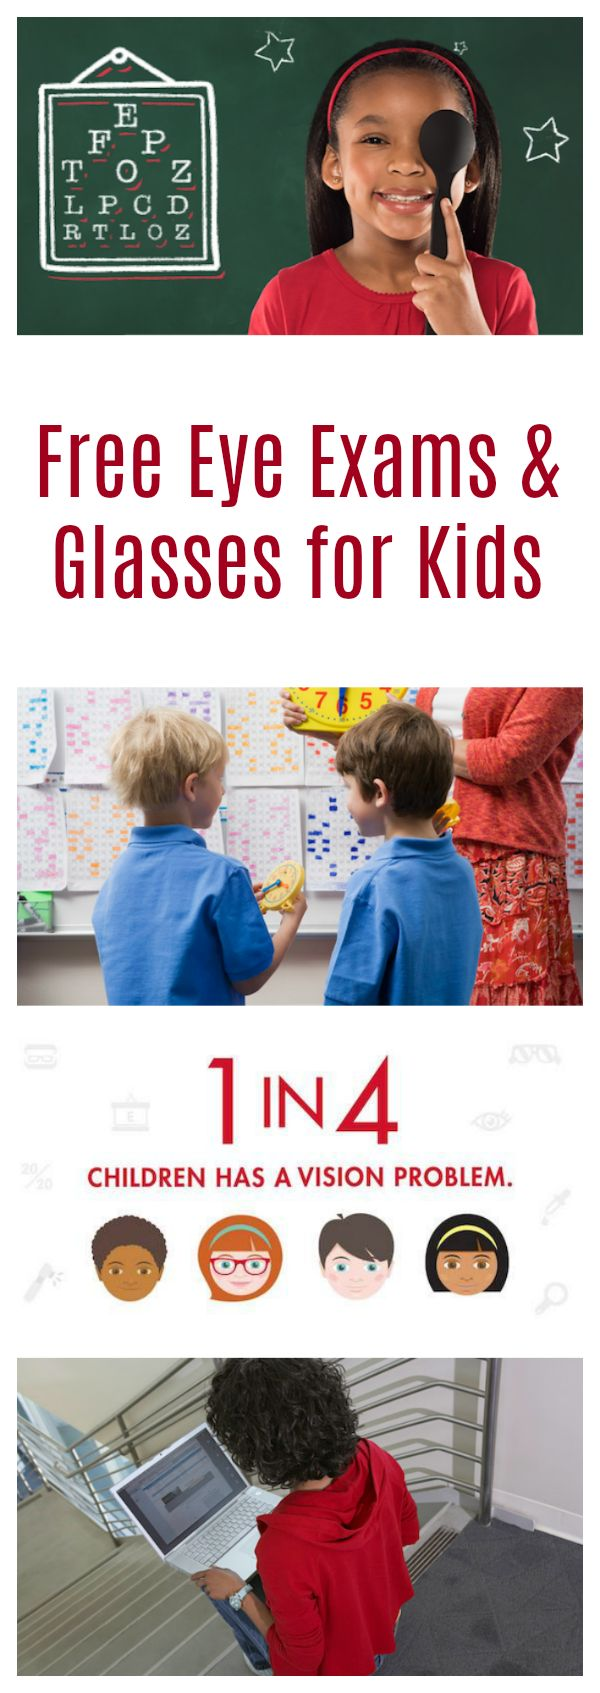 See how to apply for Free Eye Exams and Glasses for Kids in Need with the Let's Go See program from Visionworks! AD